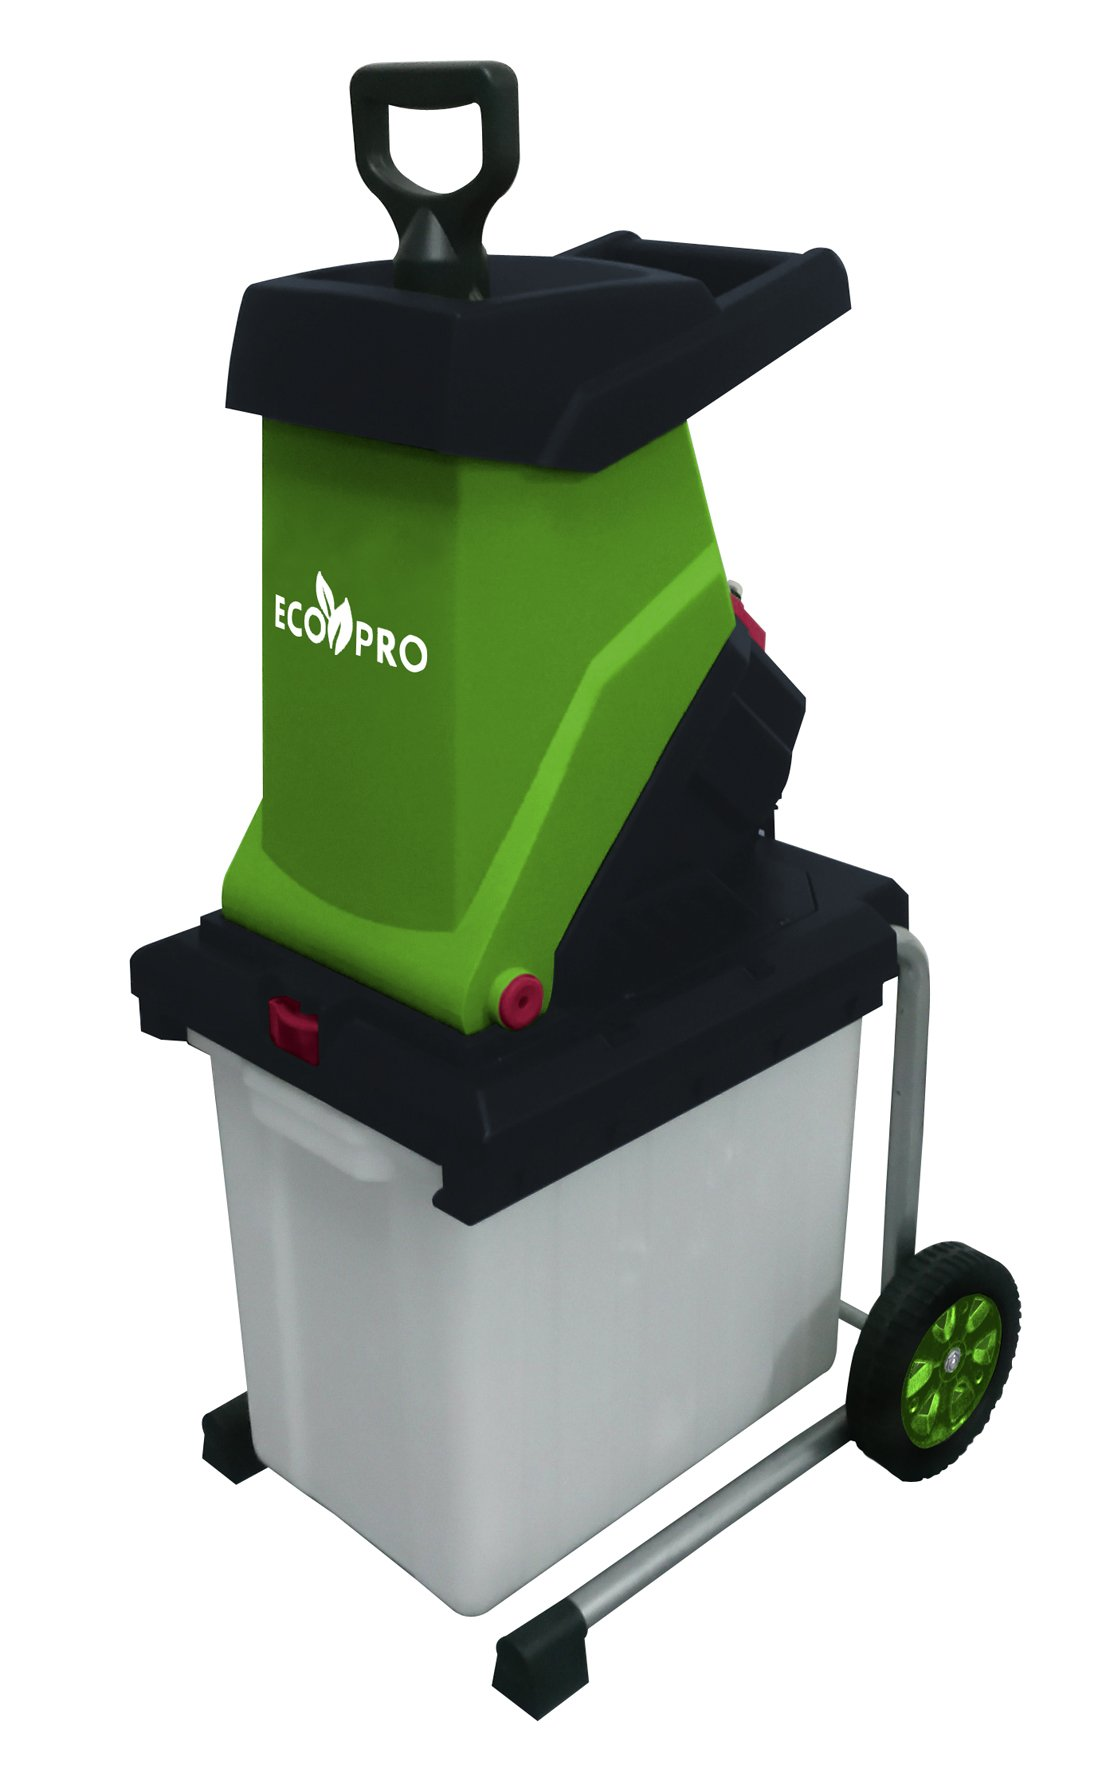 EcoPro SD-AX6000 Garden Shredder